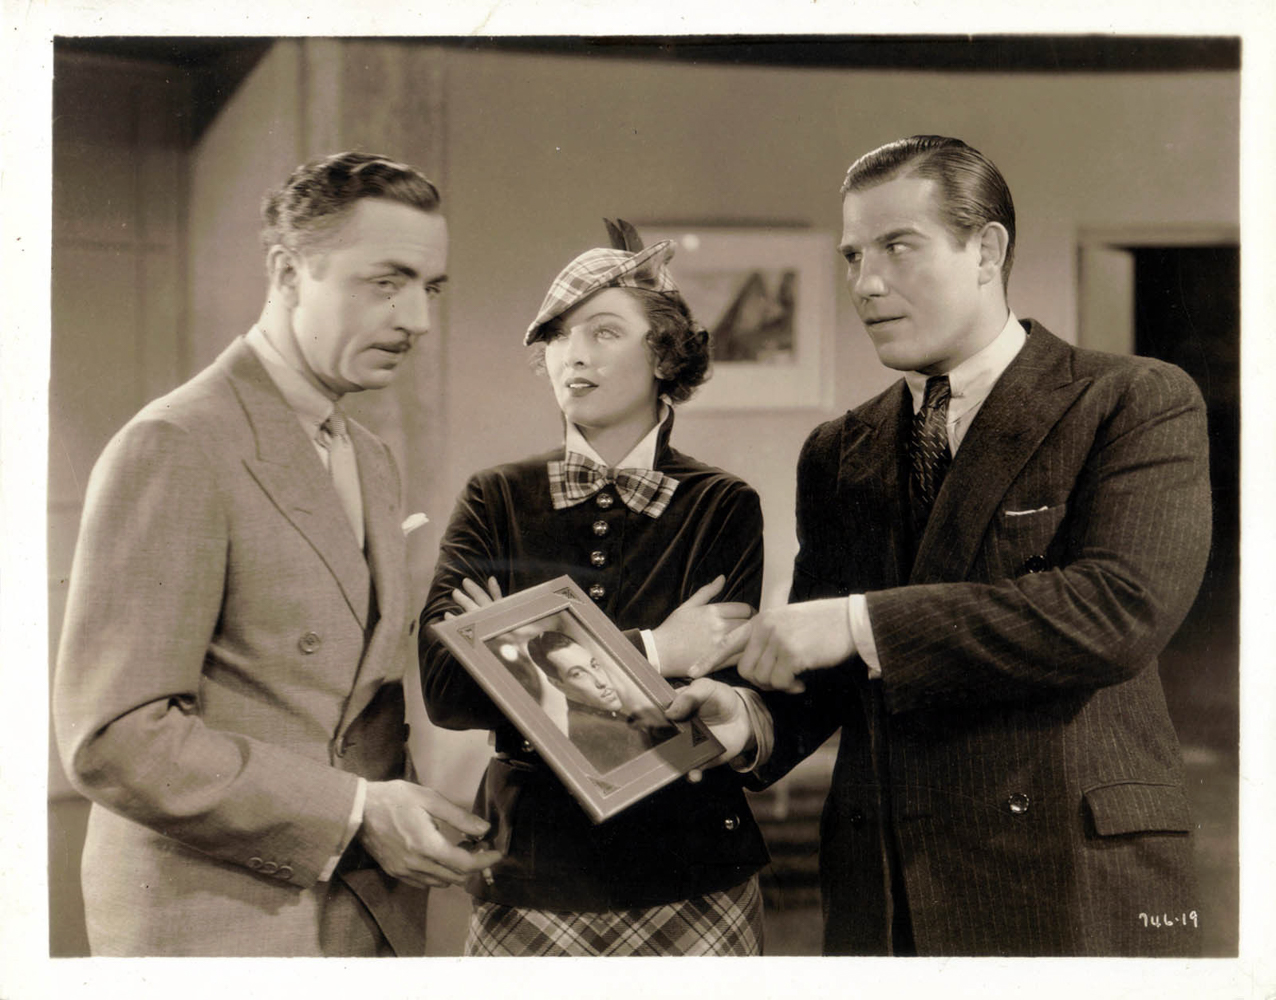 the thin man 1934 scene still photo 746-19